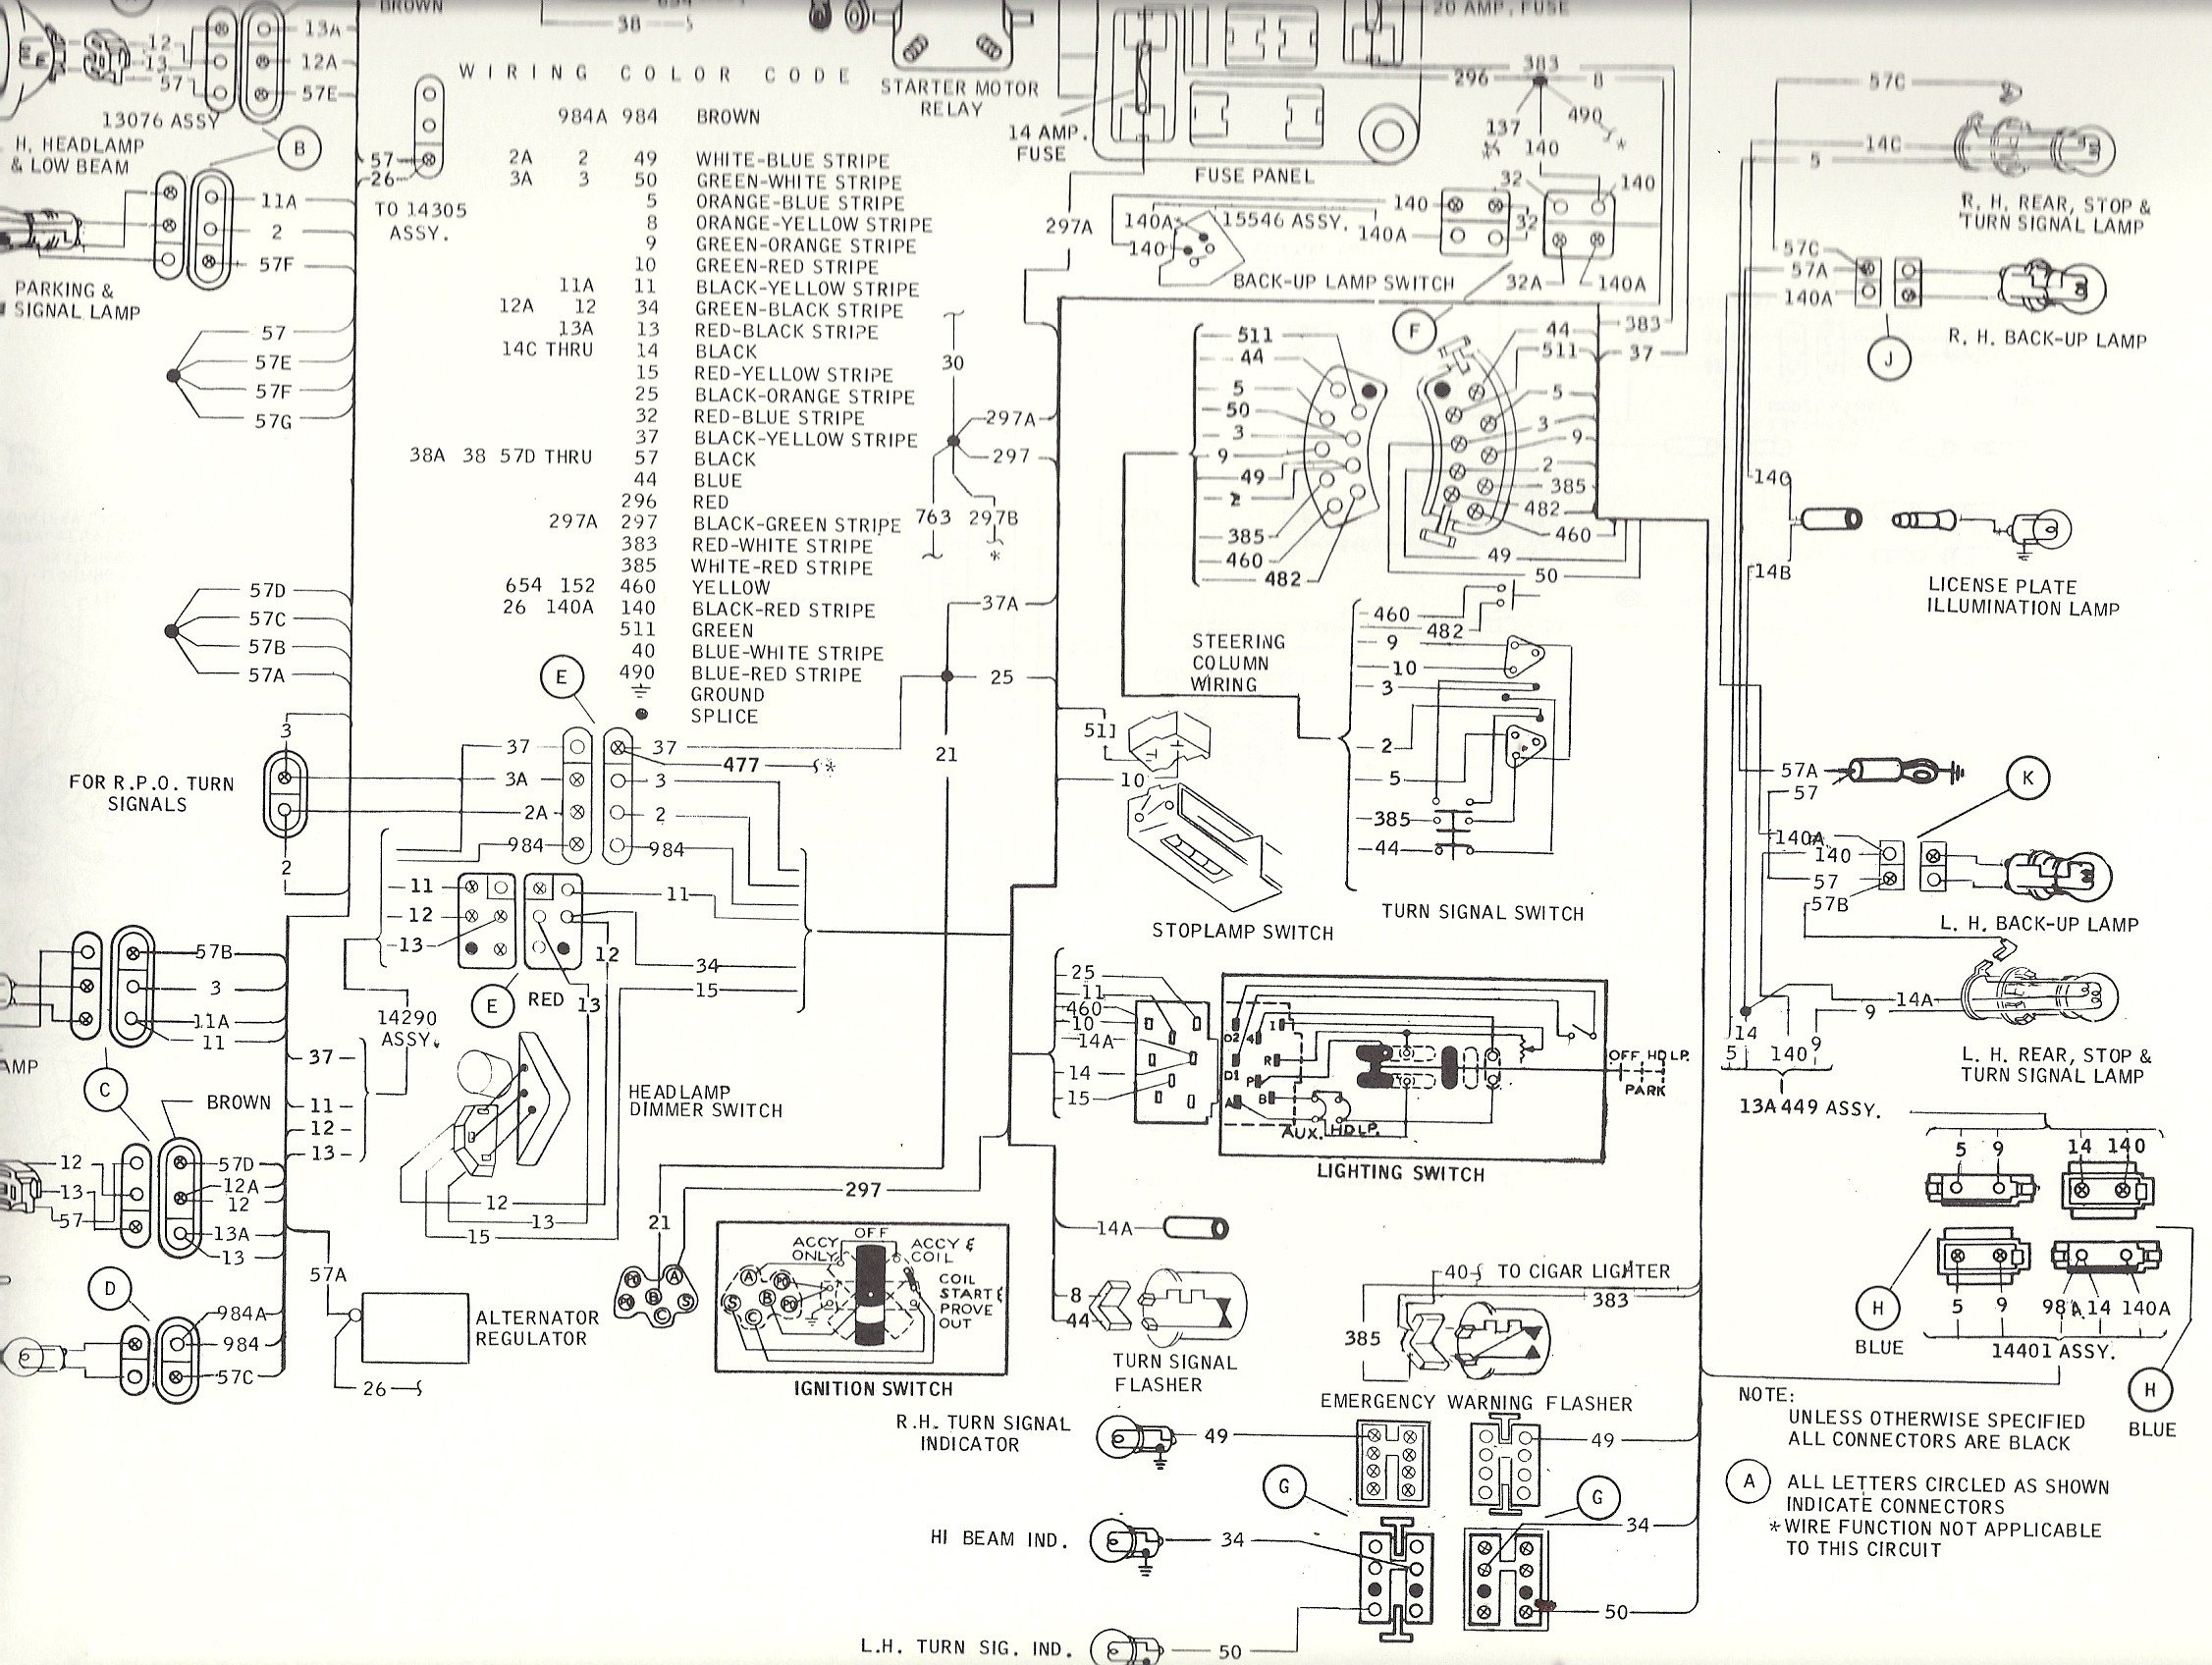 1966 corvette wiring diagram doc catalogue of schemas diagram of a camaro wiring diagrams